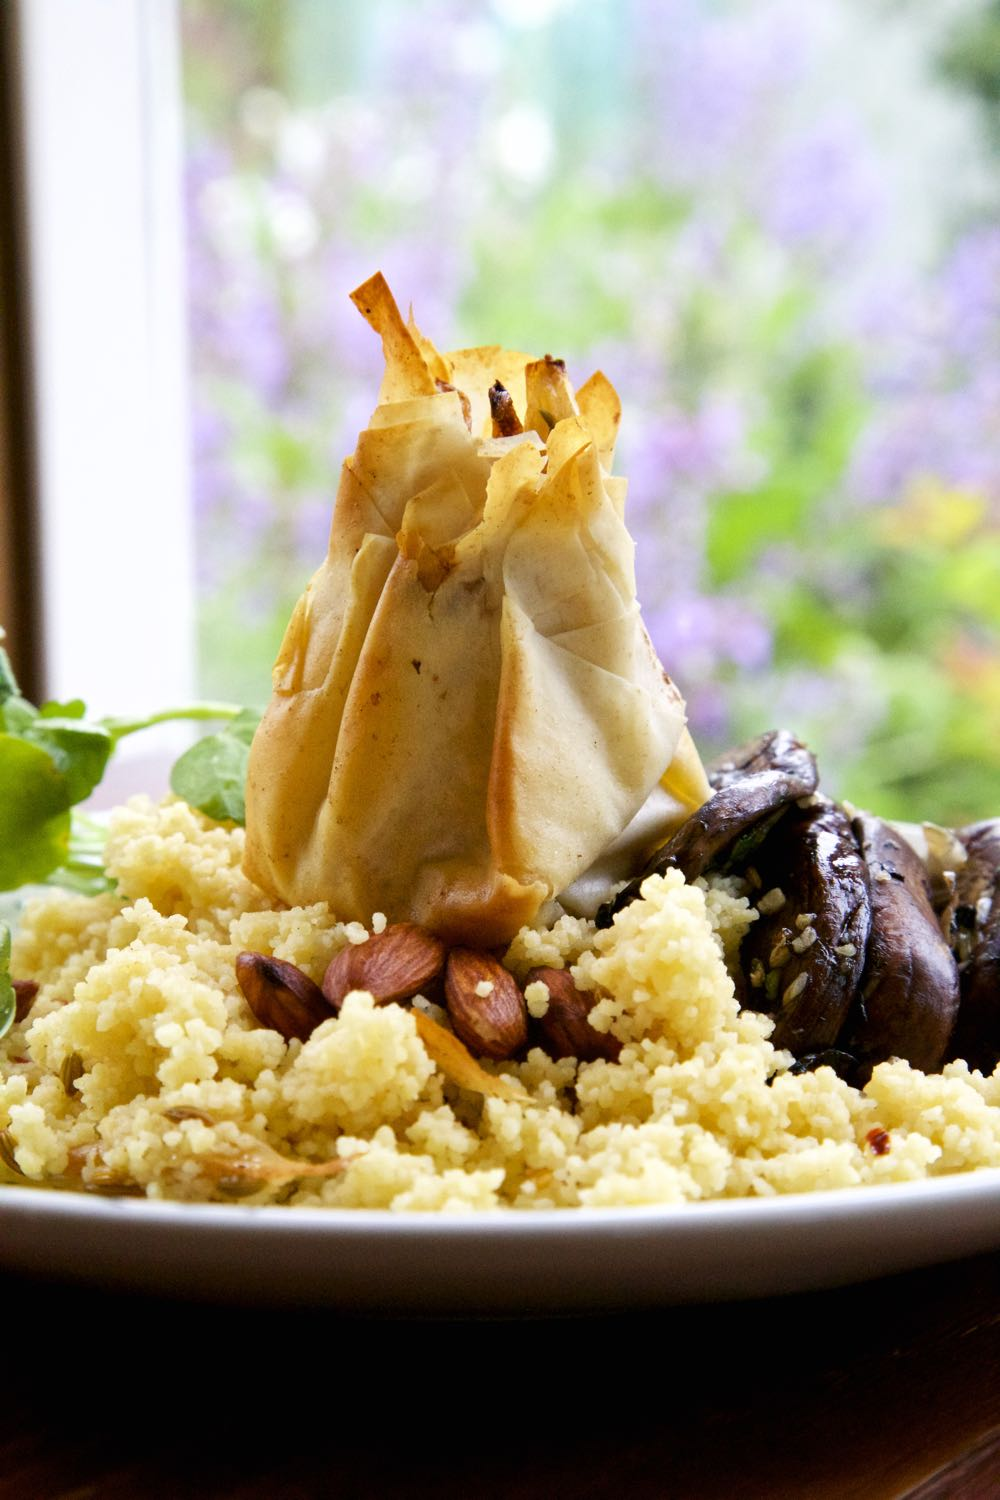 Braised Fennel and Dolcelatte Cheese in crips filo parcels served with almond cous cous and portobello mushrooms